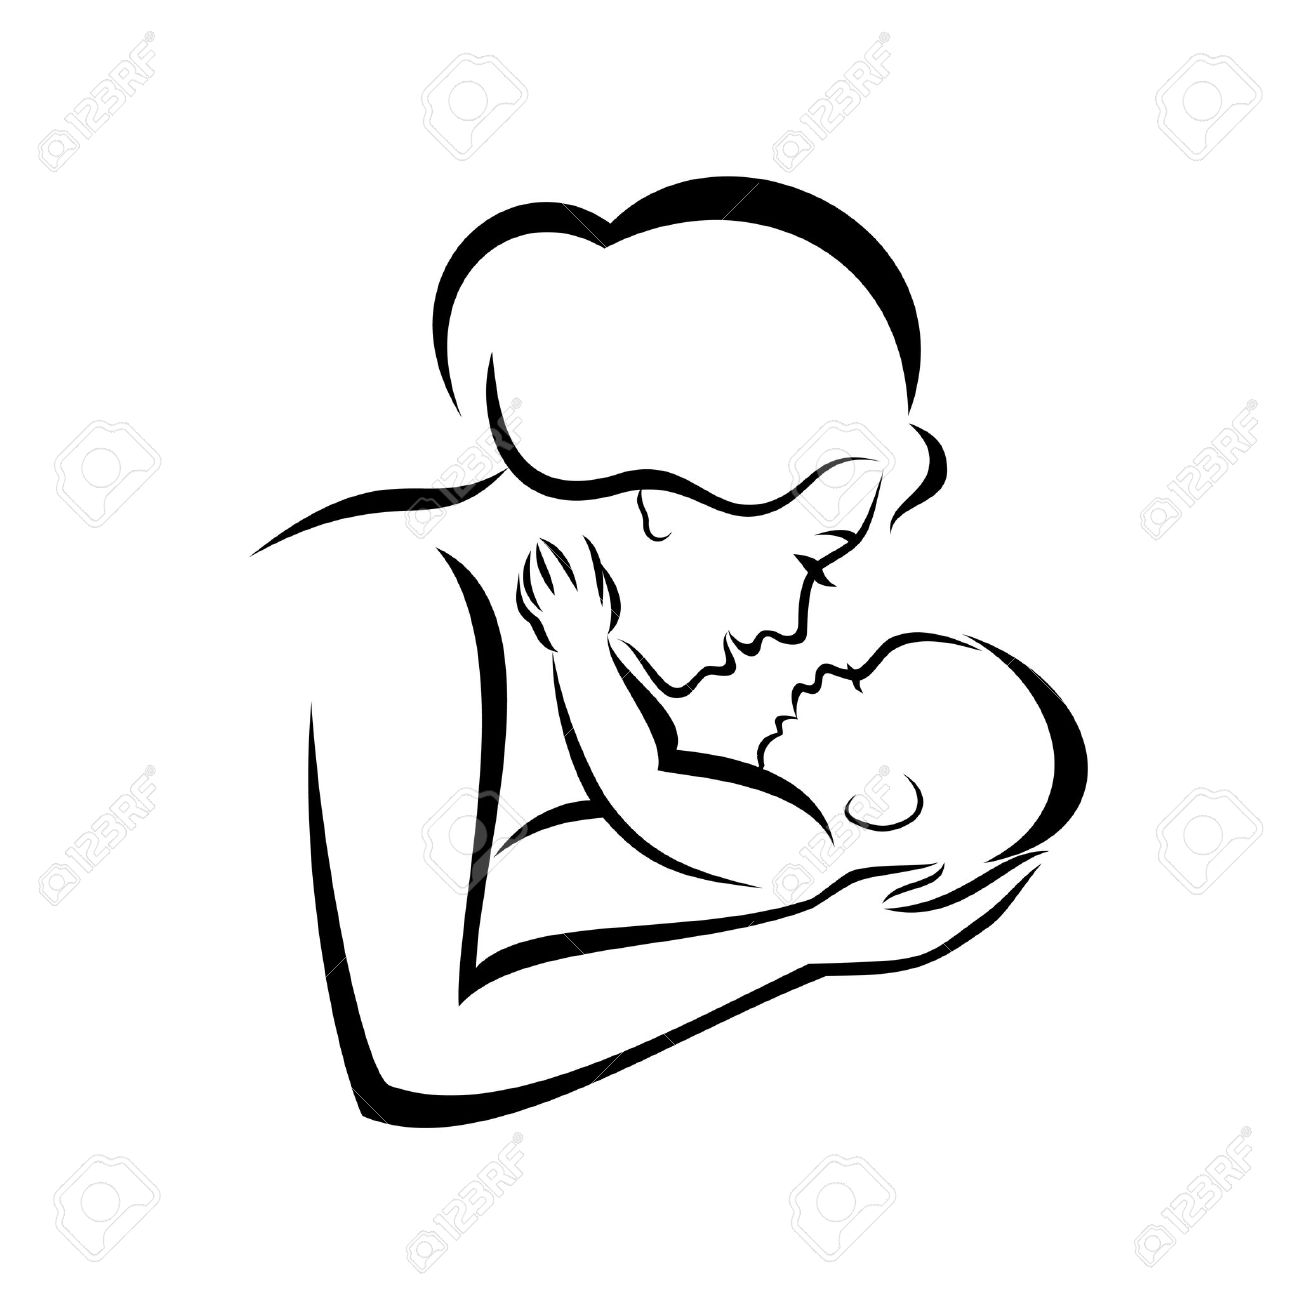 mother and baby stylized vector symbol - 37616422